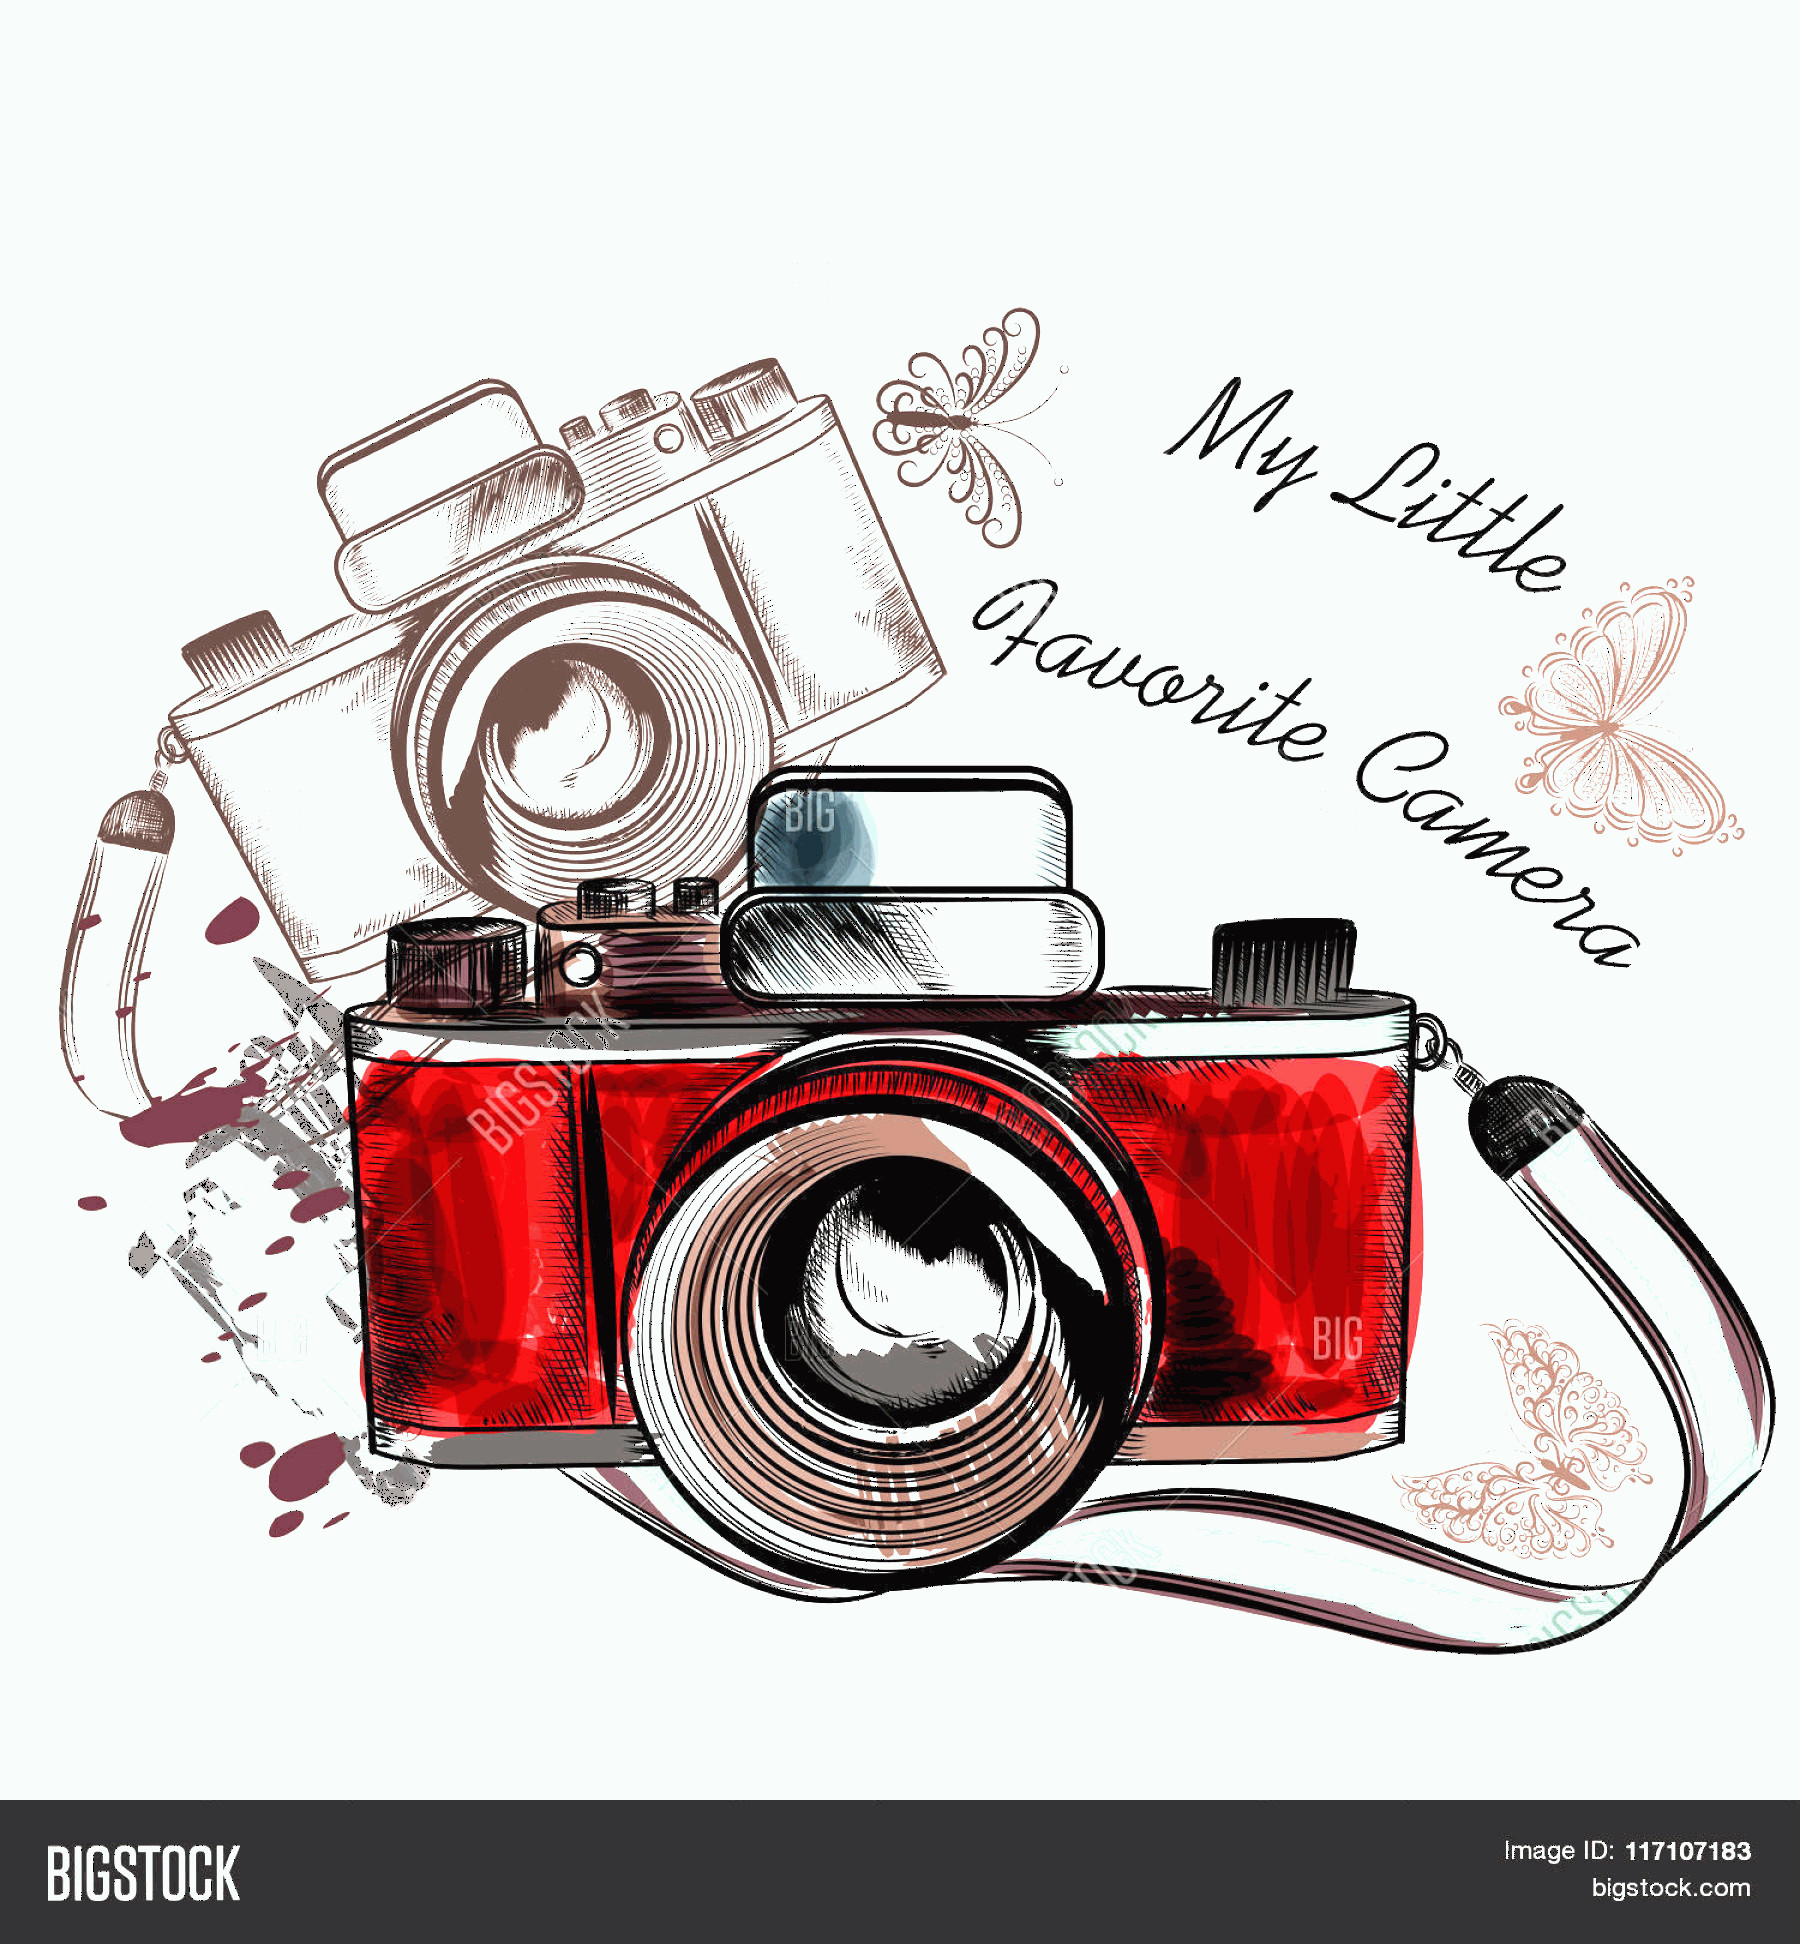 Classic Camera Vector: Stock Vector Cute Hand Drawn Vintage Camera Vector Illustration